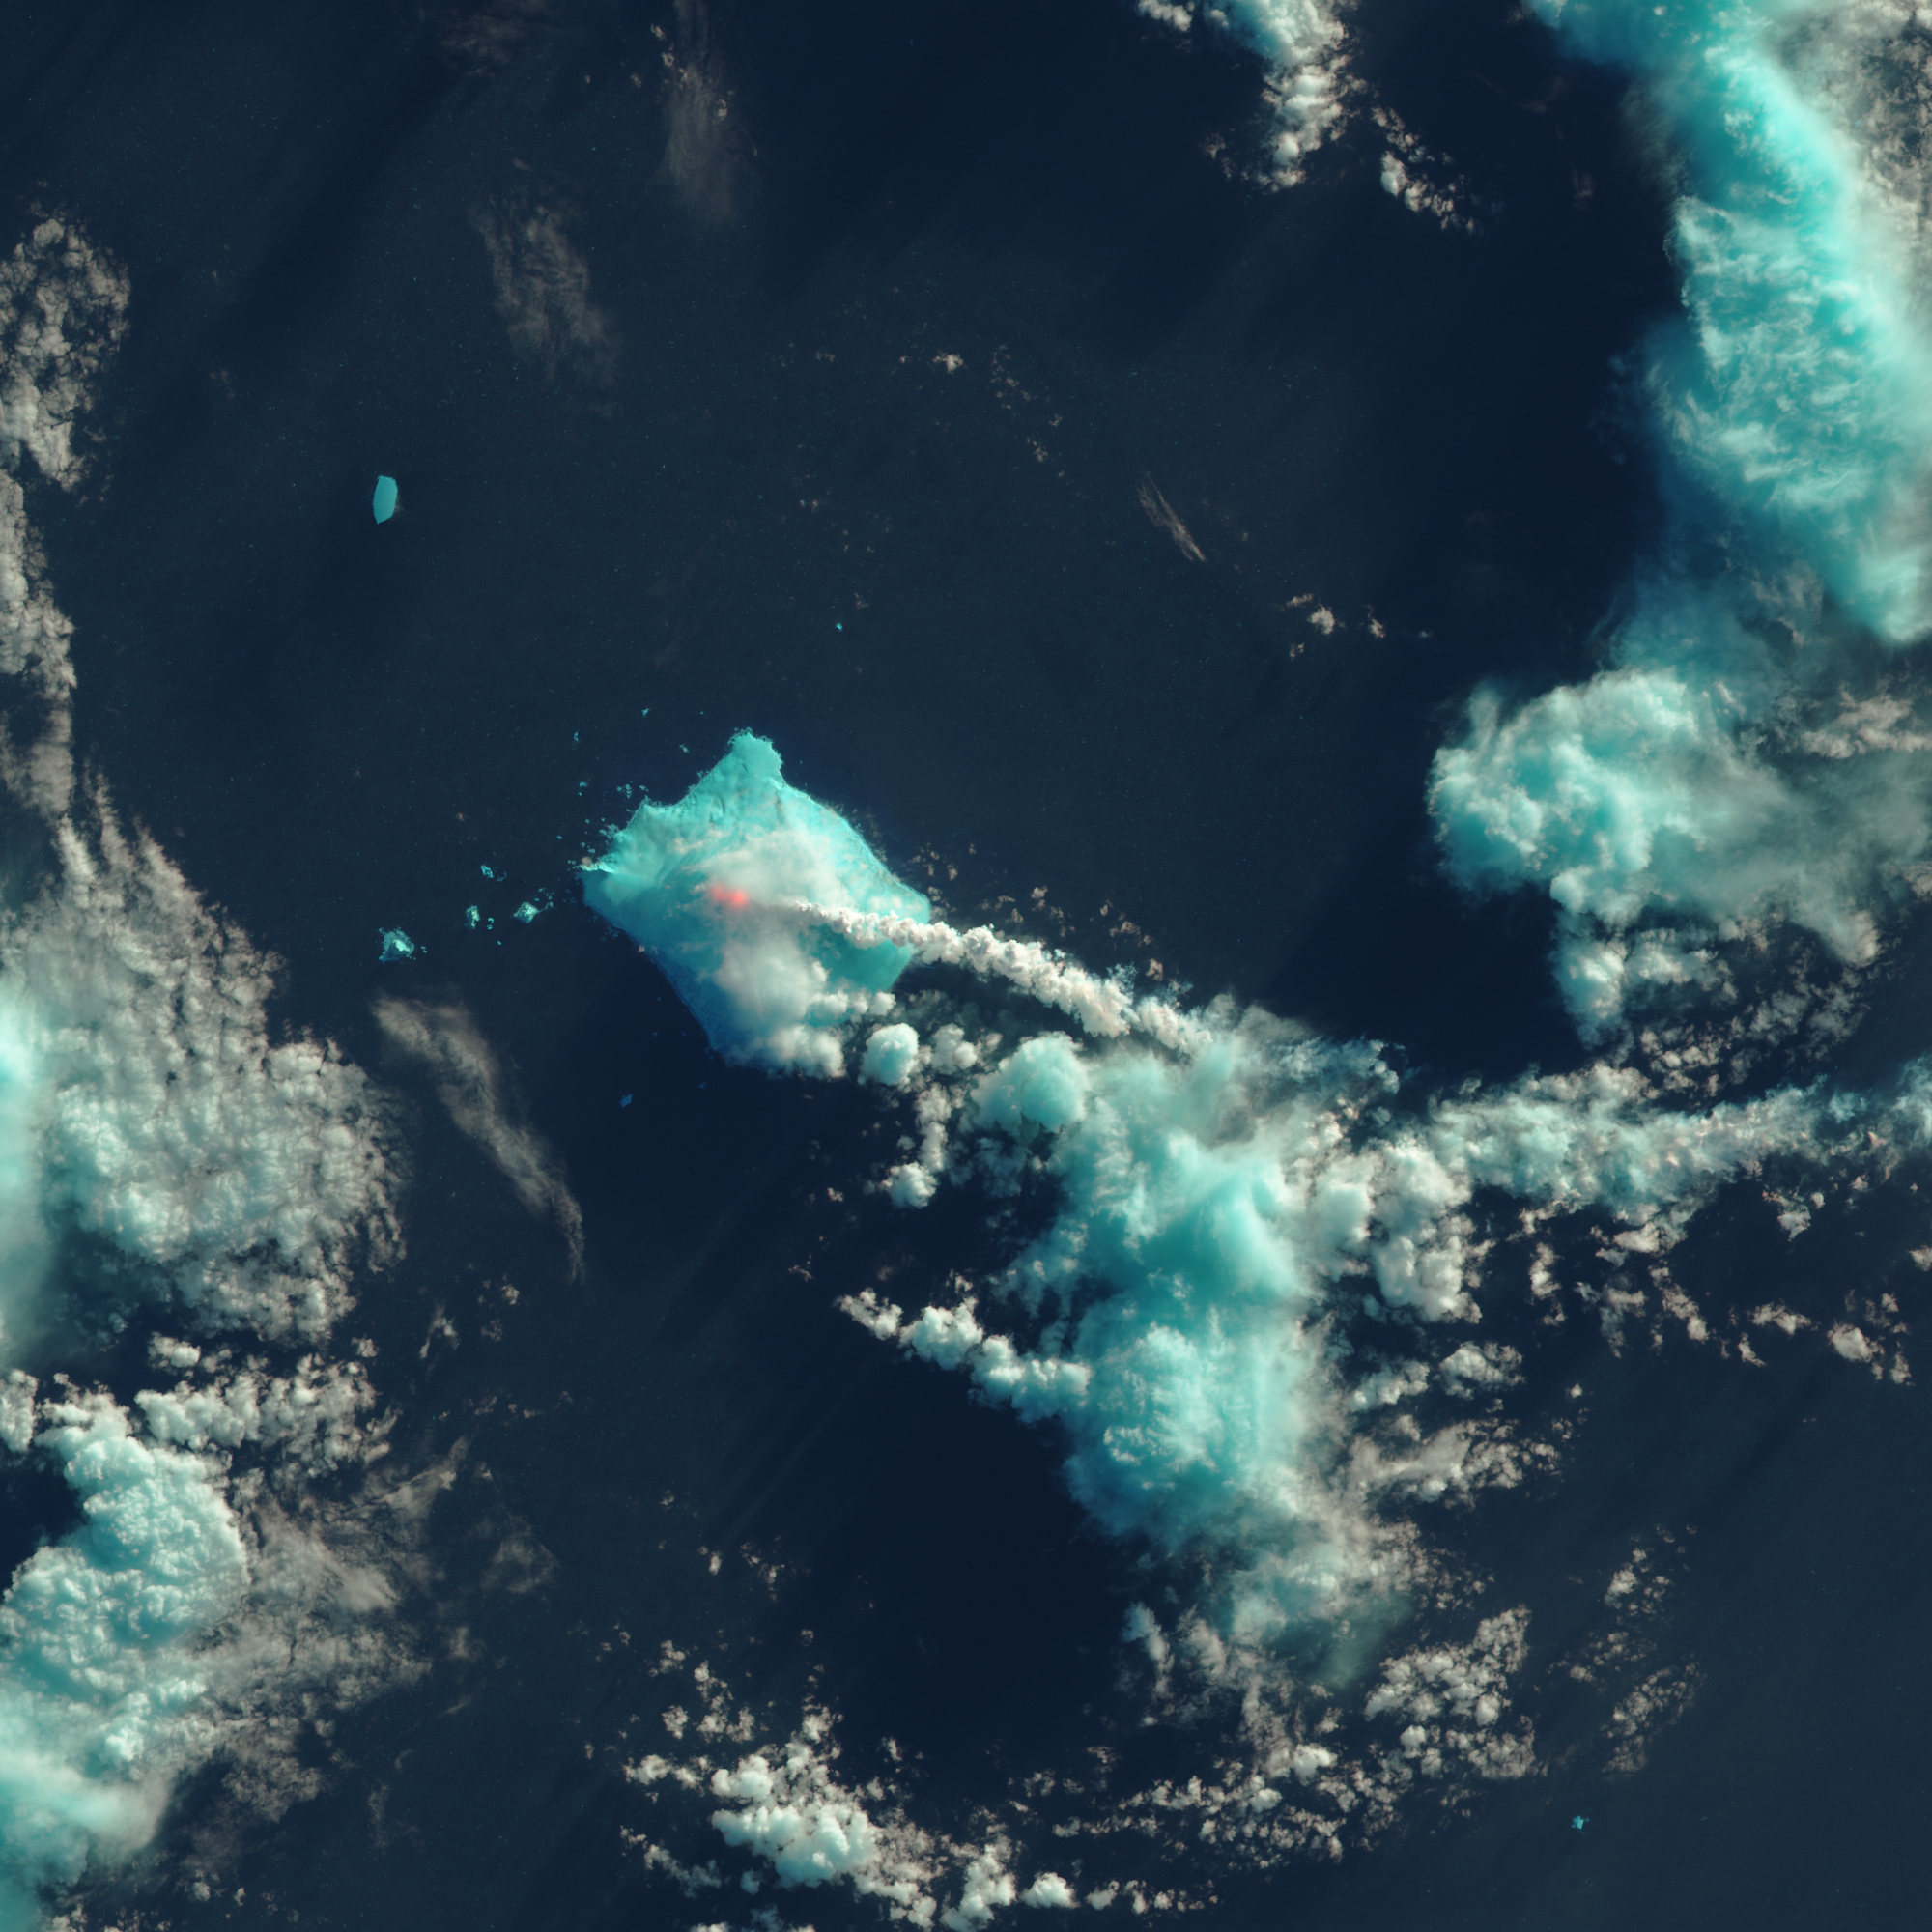 Mount Sourabaya, Bristol IslandA combination of shortwave-infrared, near-infrared, and red light helped detect the heat signatures of an eruption on this remote stratovolcano, observed for the first time in 60 years. May 1, 2016.